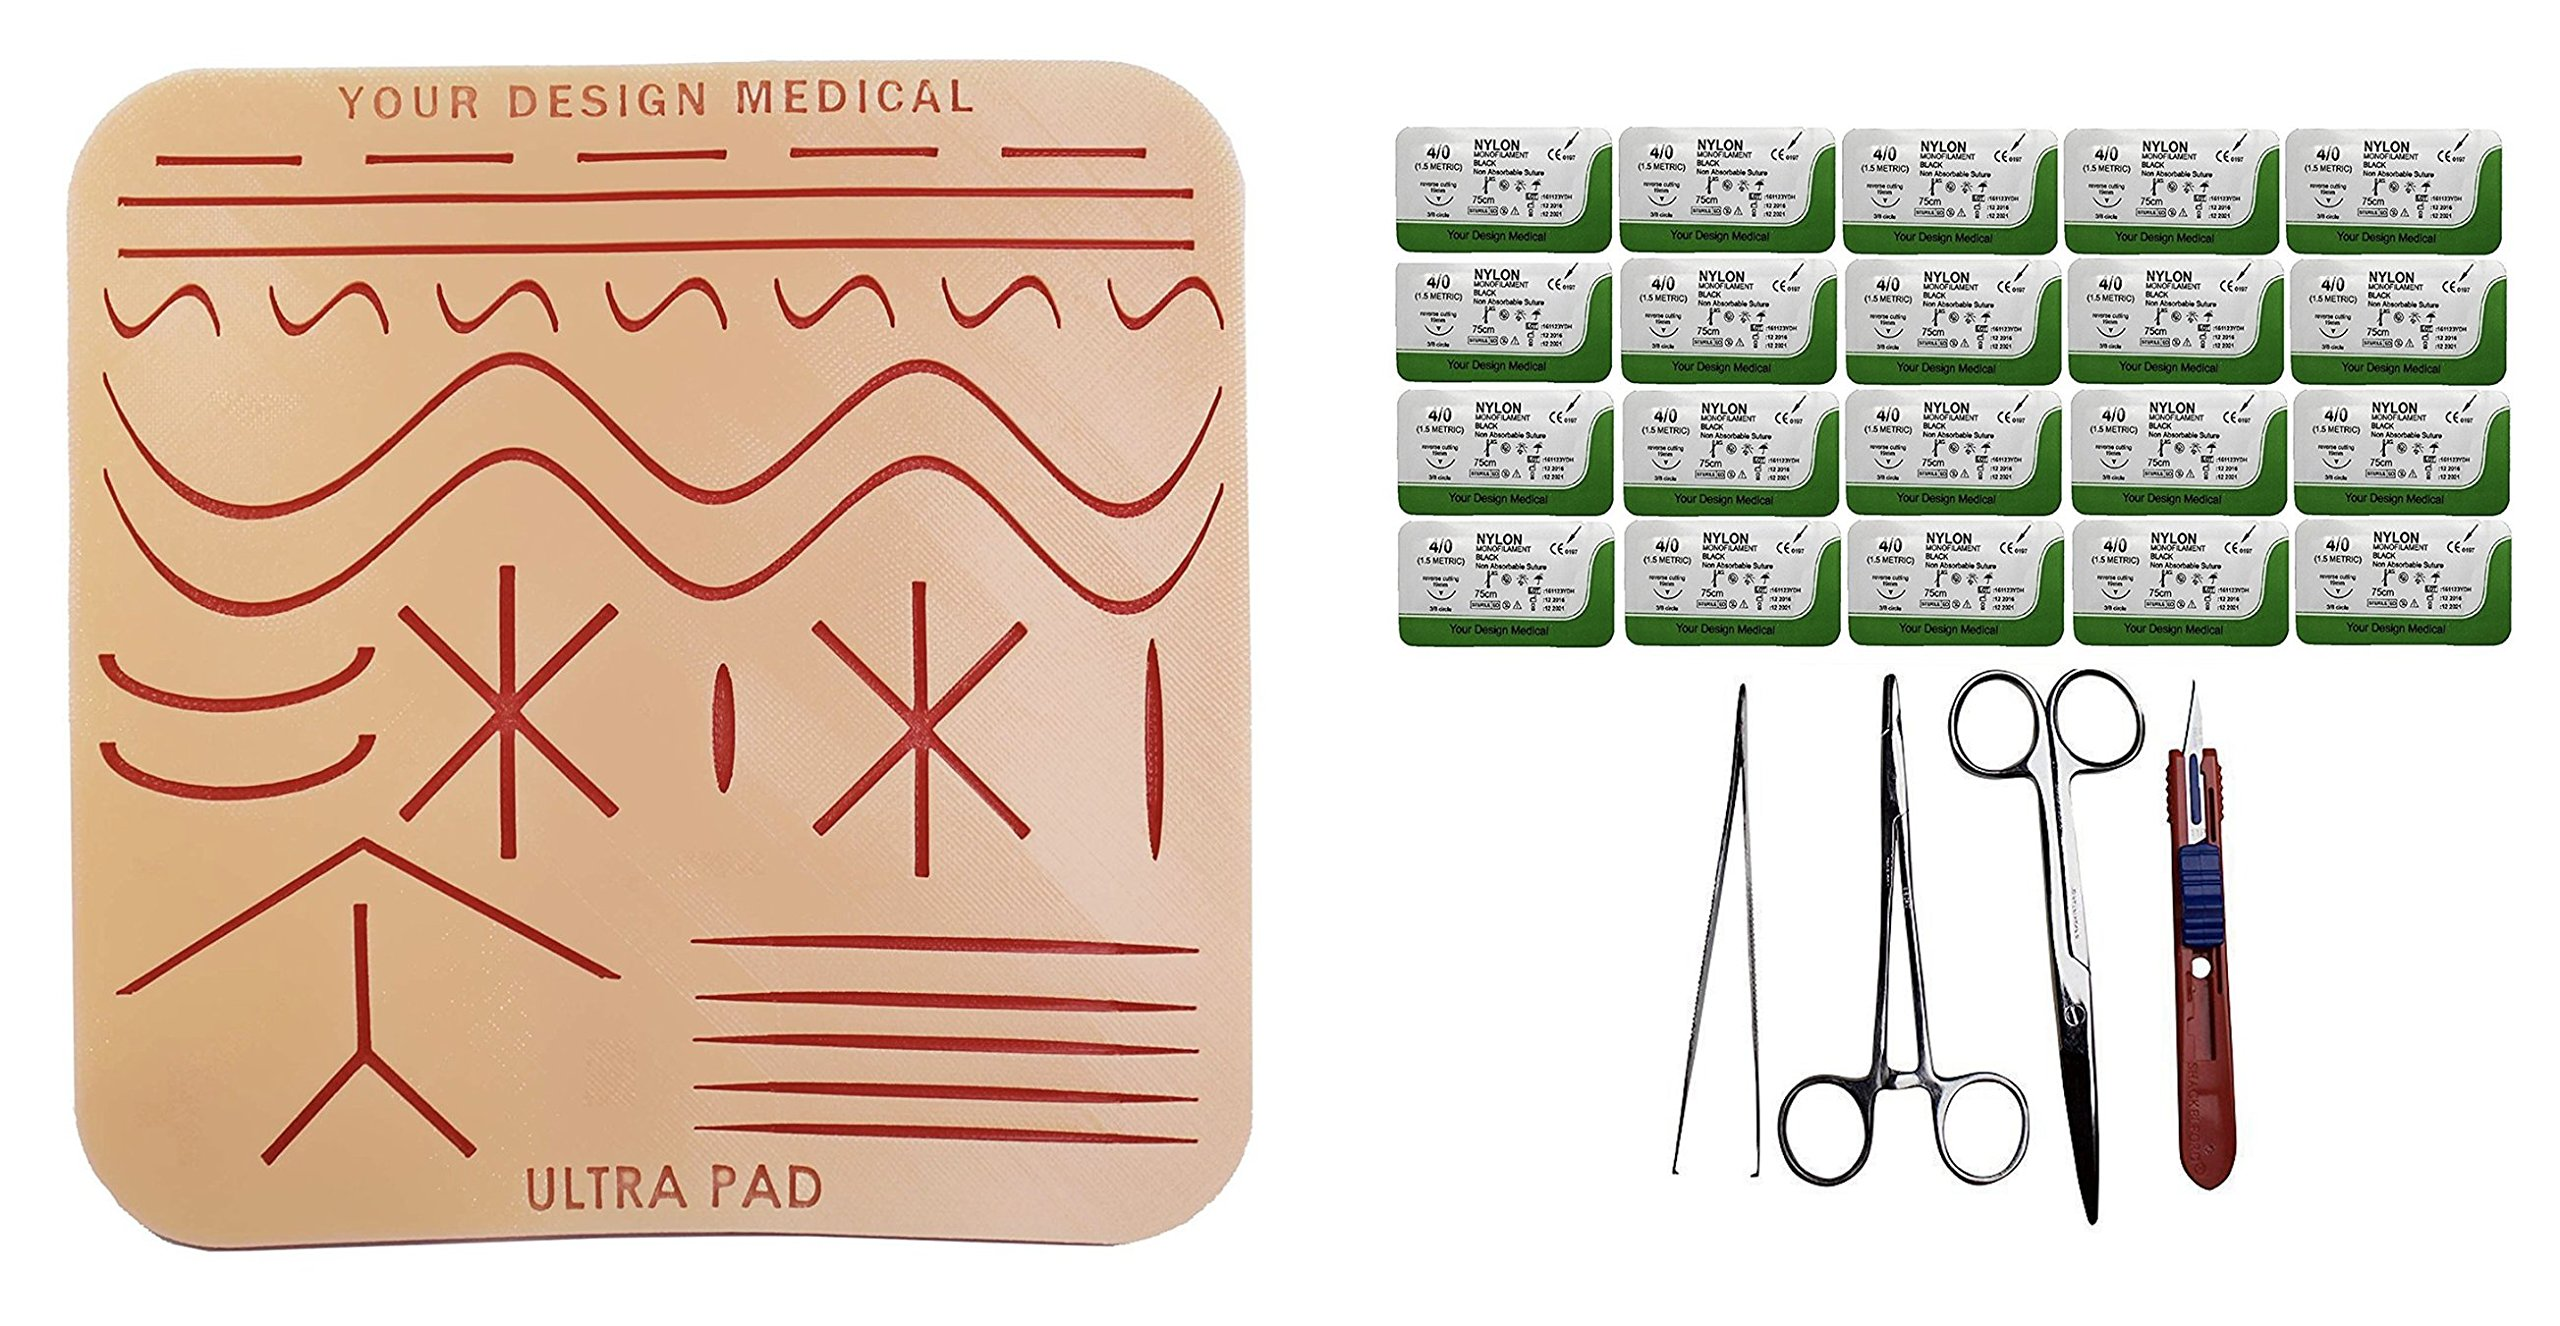 Your Design Medical Extra Large (8x8'') 3-Layer Silicone Suture Pad w/Wounds Suturing Practice Kit - Includes pad, Driver, Pickups, Scissors, Blade, 20x Nylon 4-0s & Educational Material by Your Design Medical